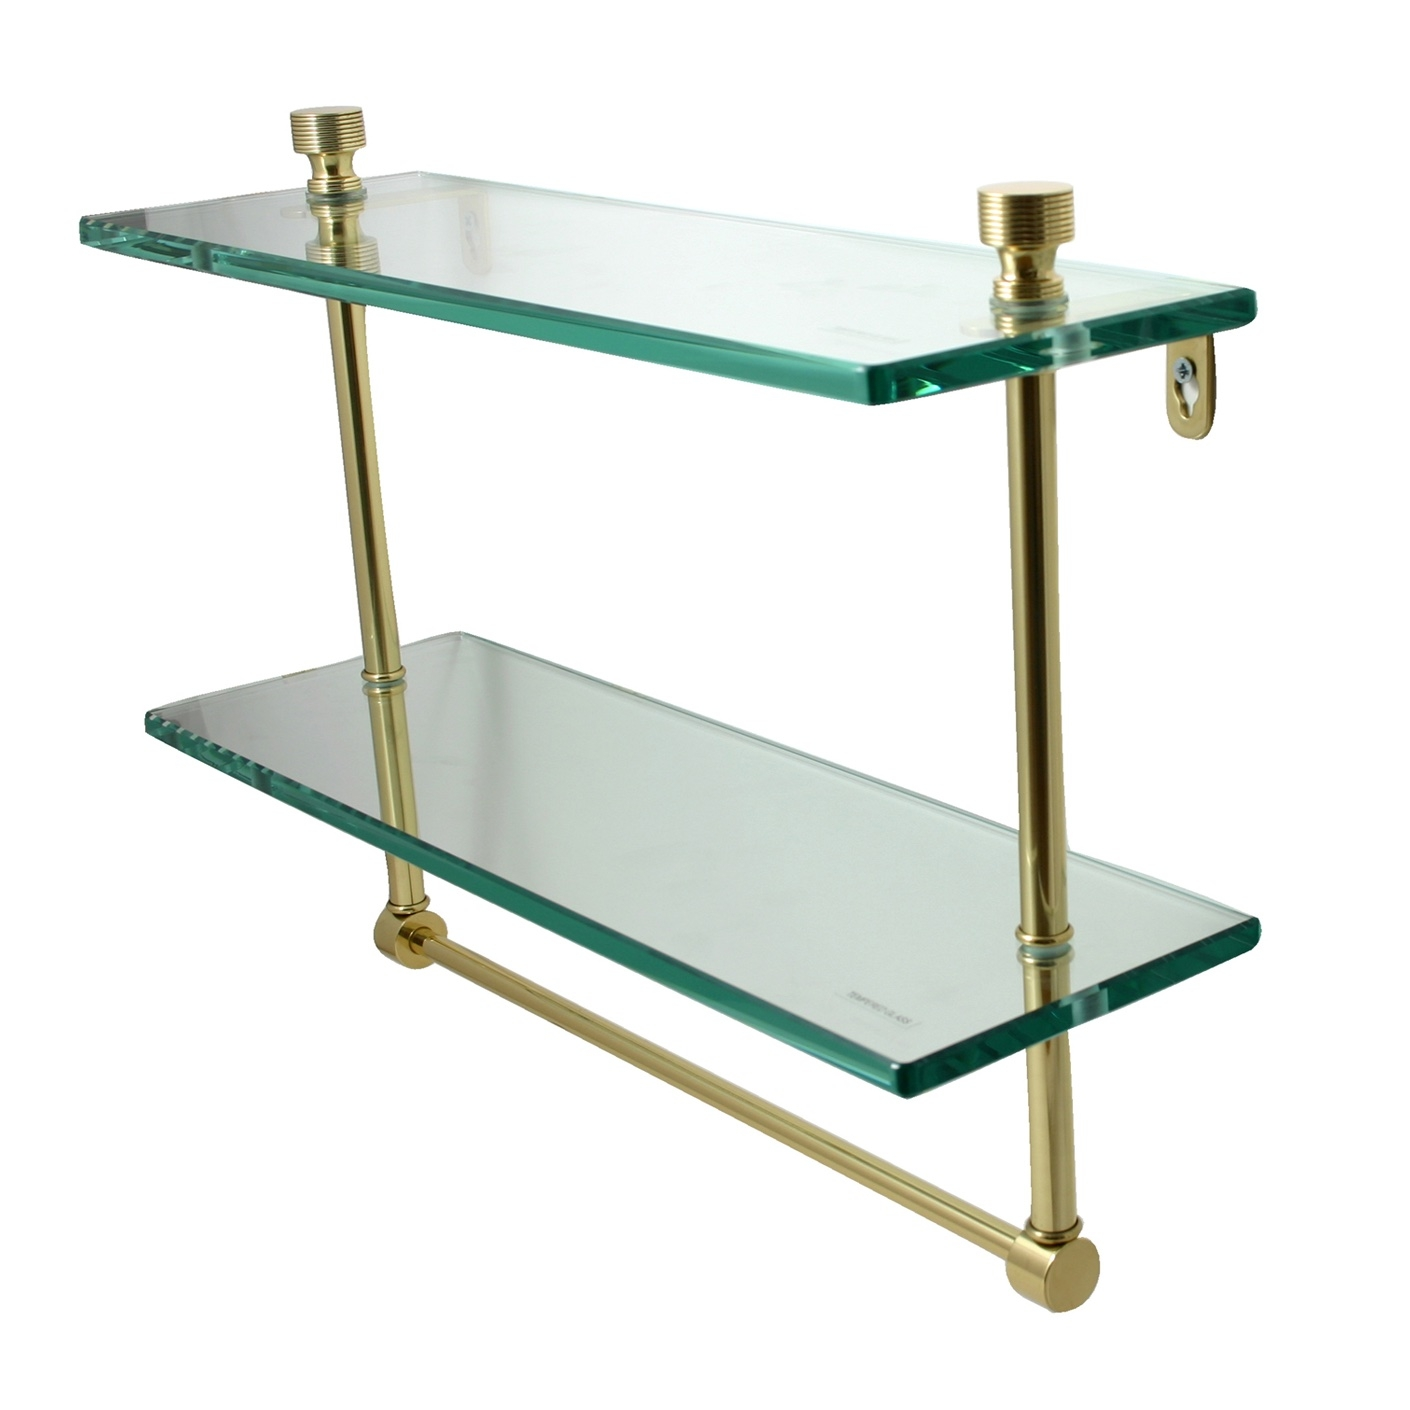 Suspended Glass Shelf Glass Cable Shelving Supporting Bread Pertaining To Cable Suspended Glass Shelves (Image 13 of 15)